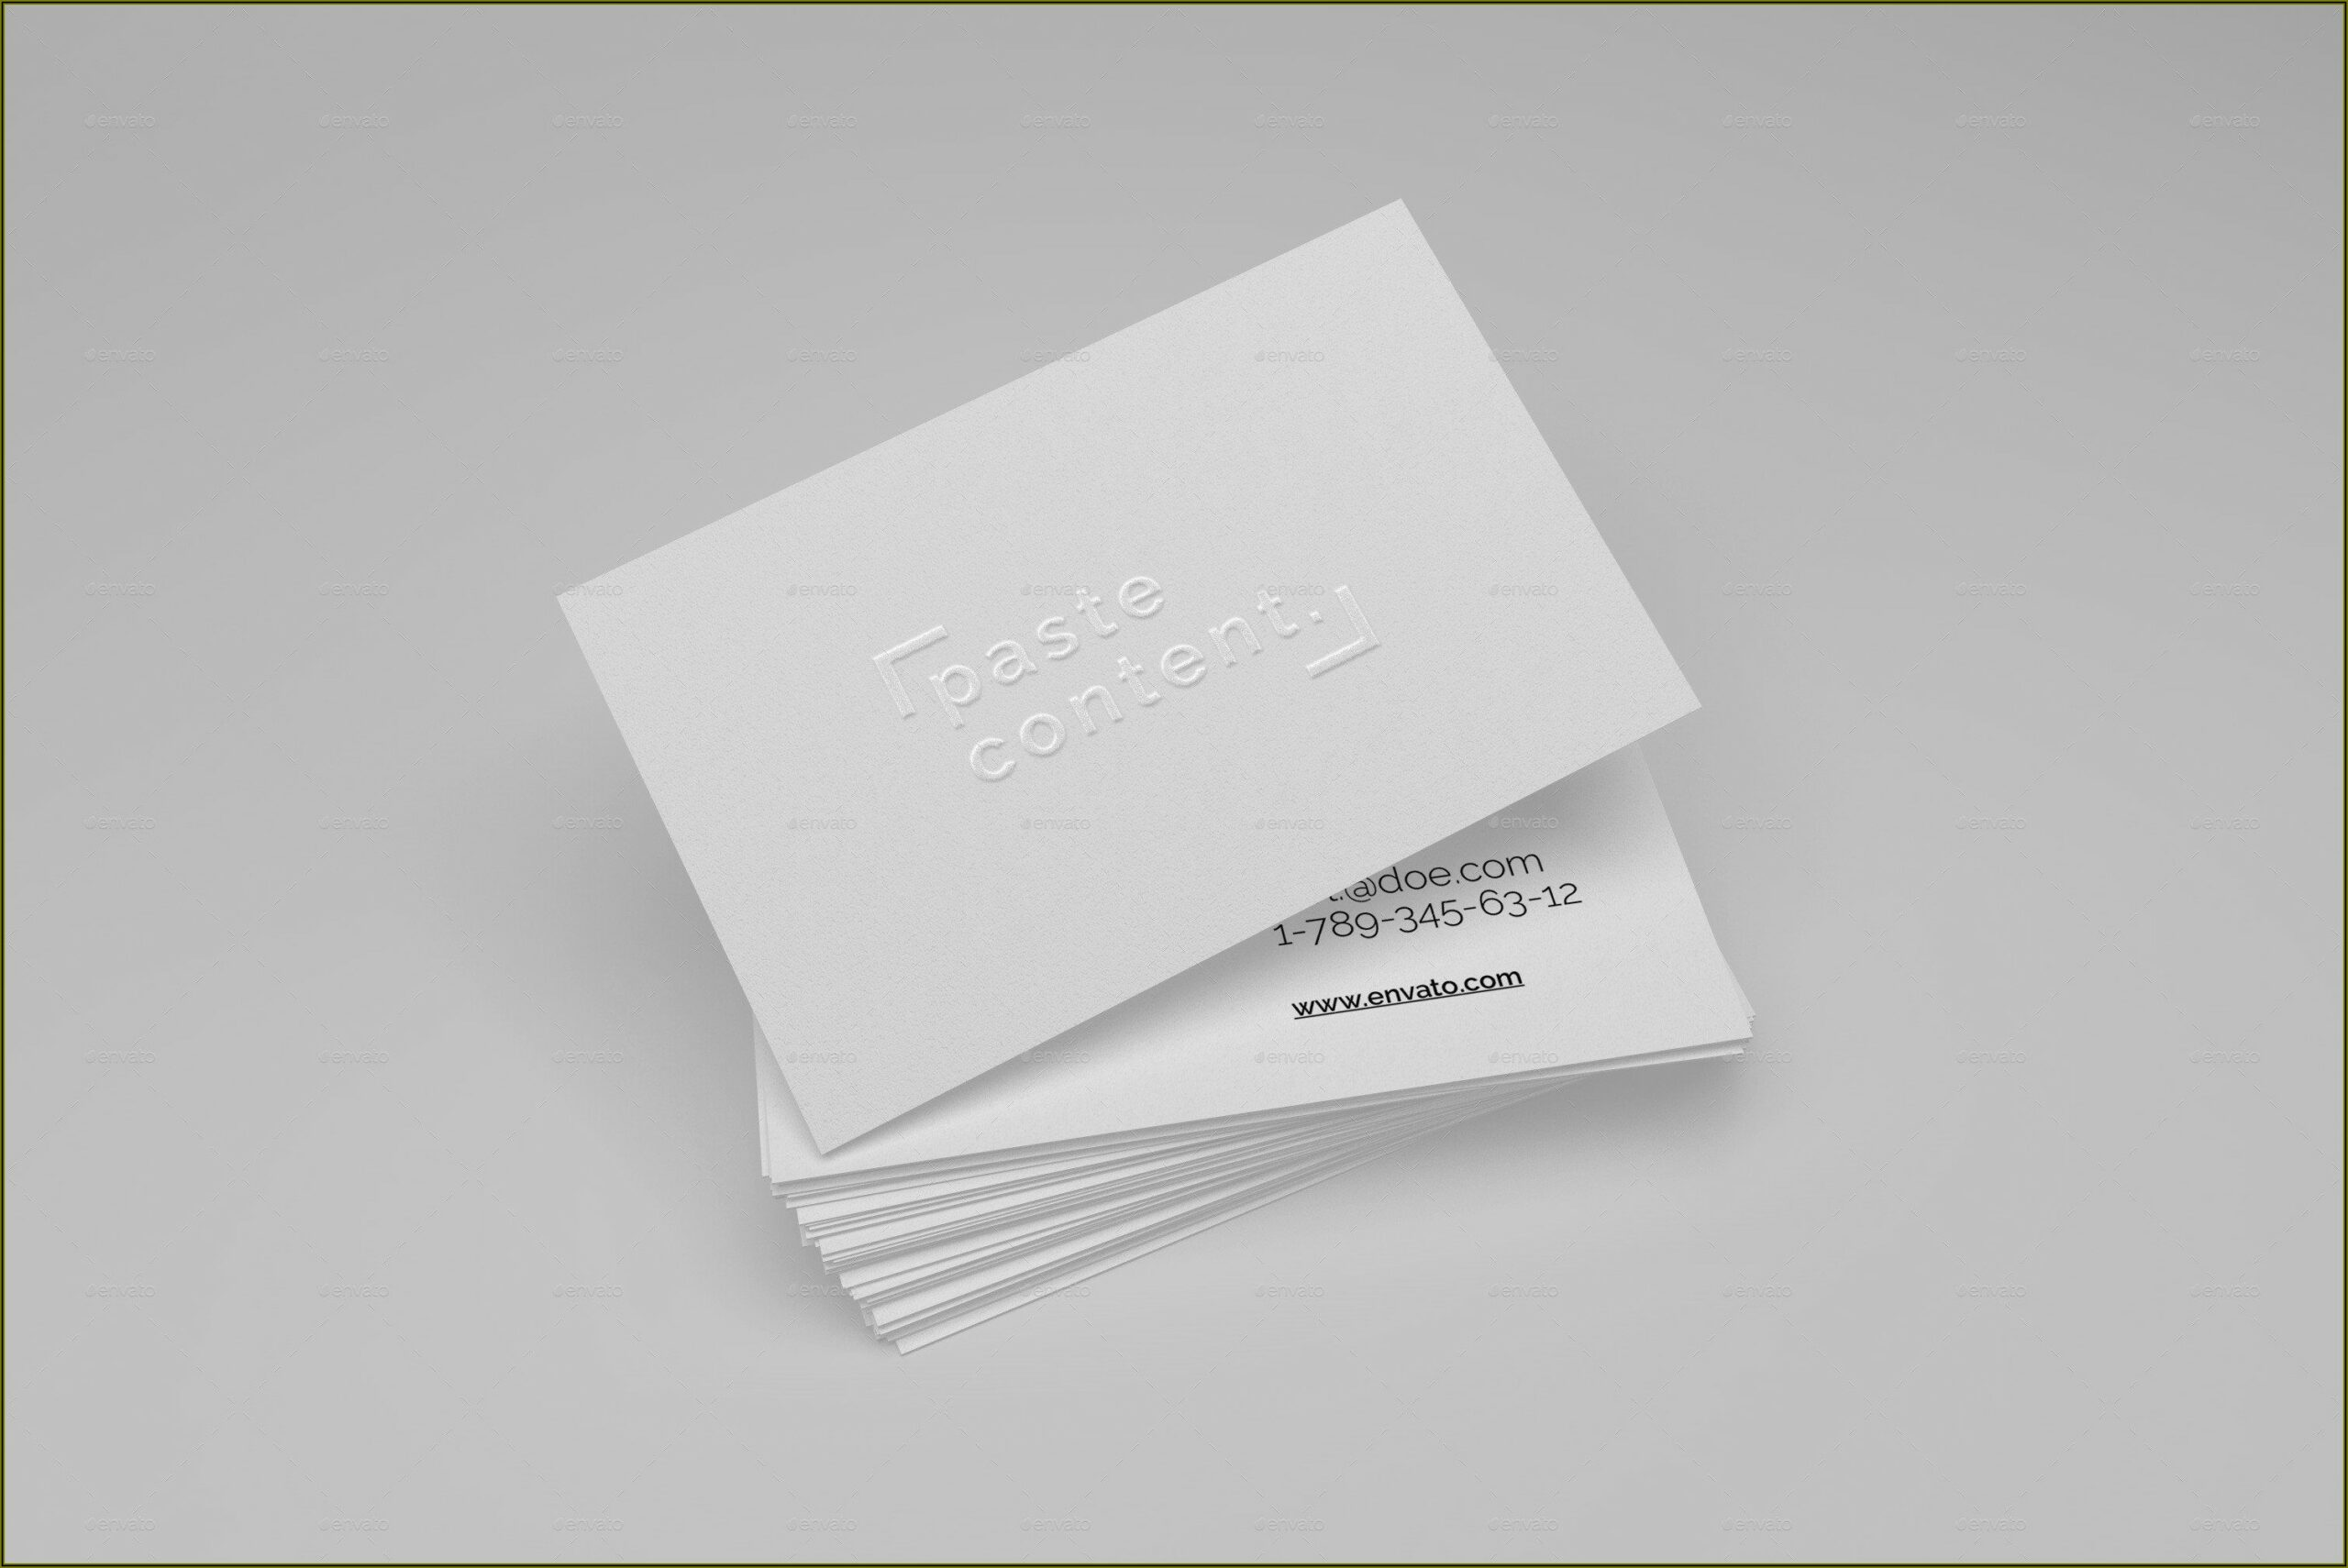 Embossed Business Cards Mockup